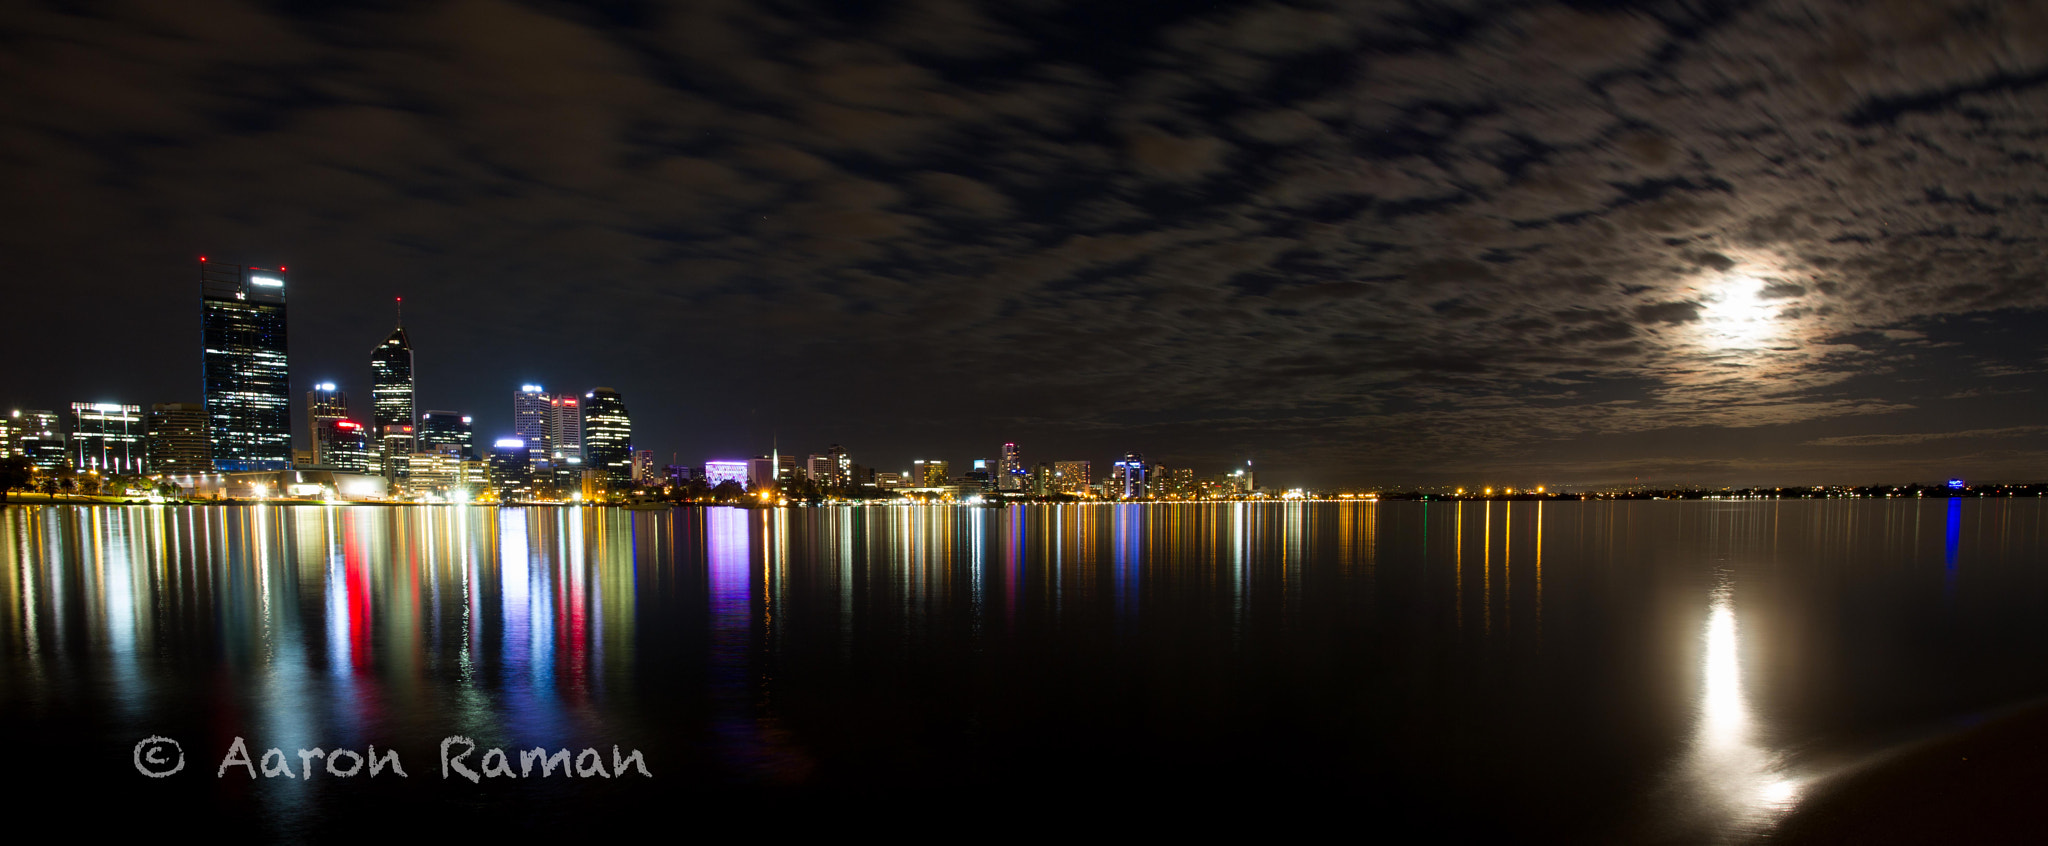 Photograph Moonrising over Perth's city skyline by Aaron Raman on 500px